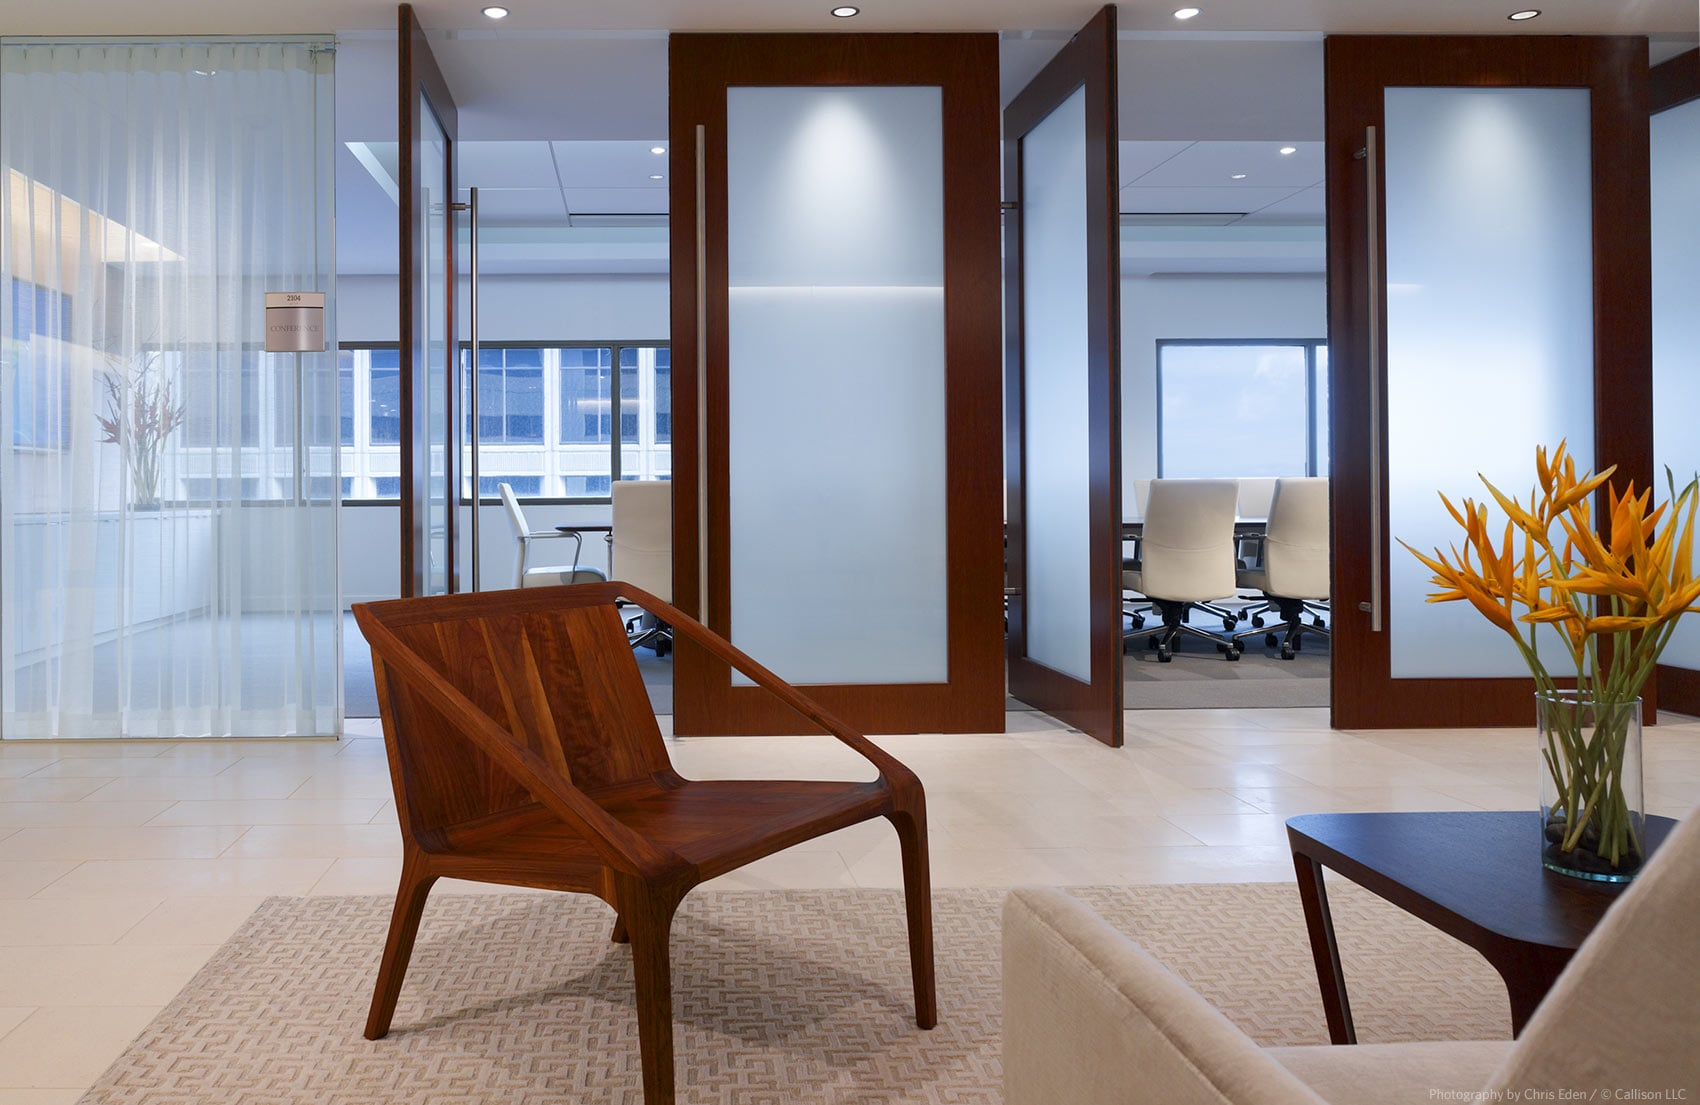 Carlsmith Ball Law Offices - Interior lobby and conference rooms